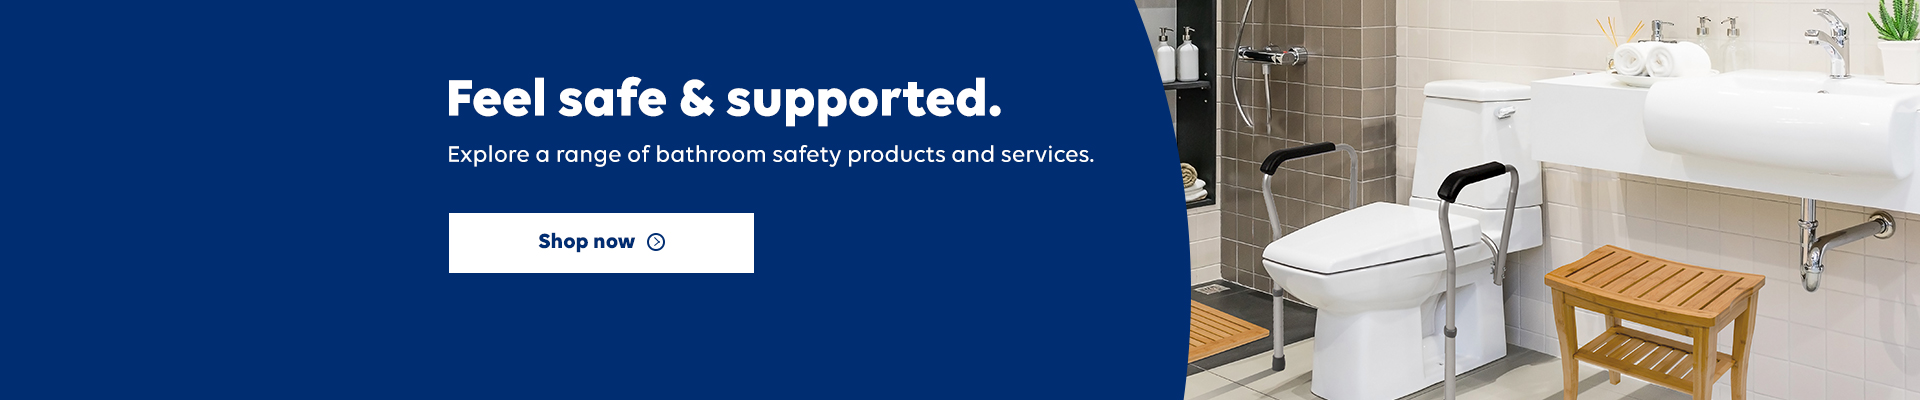 Feel safe & supported. Explore a range of bathroom safety products and services. Shop now.